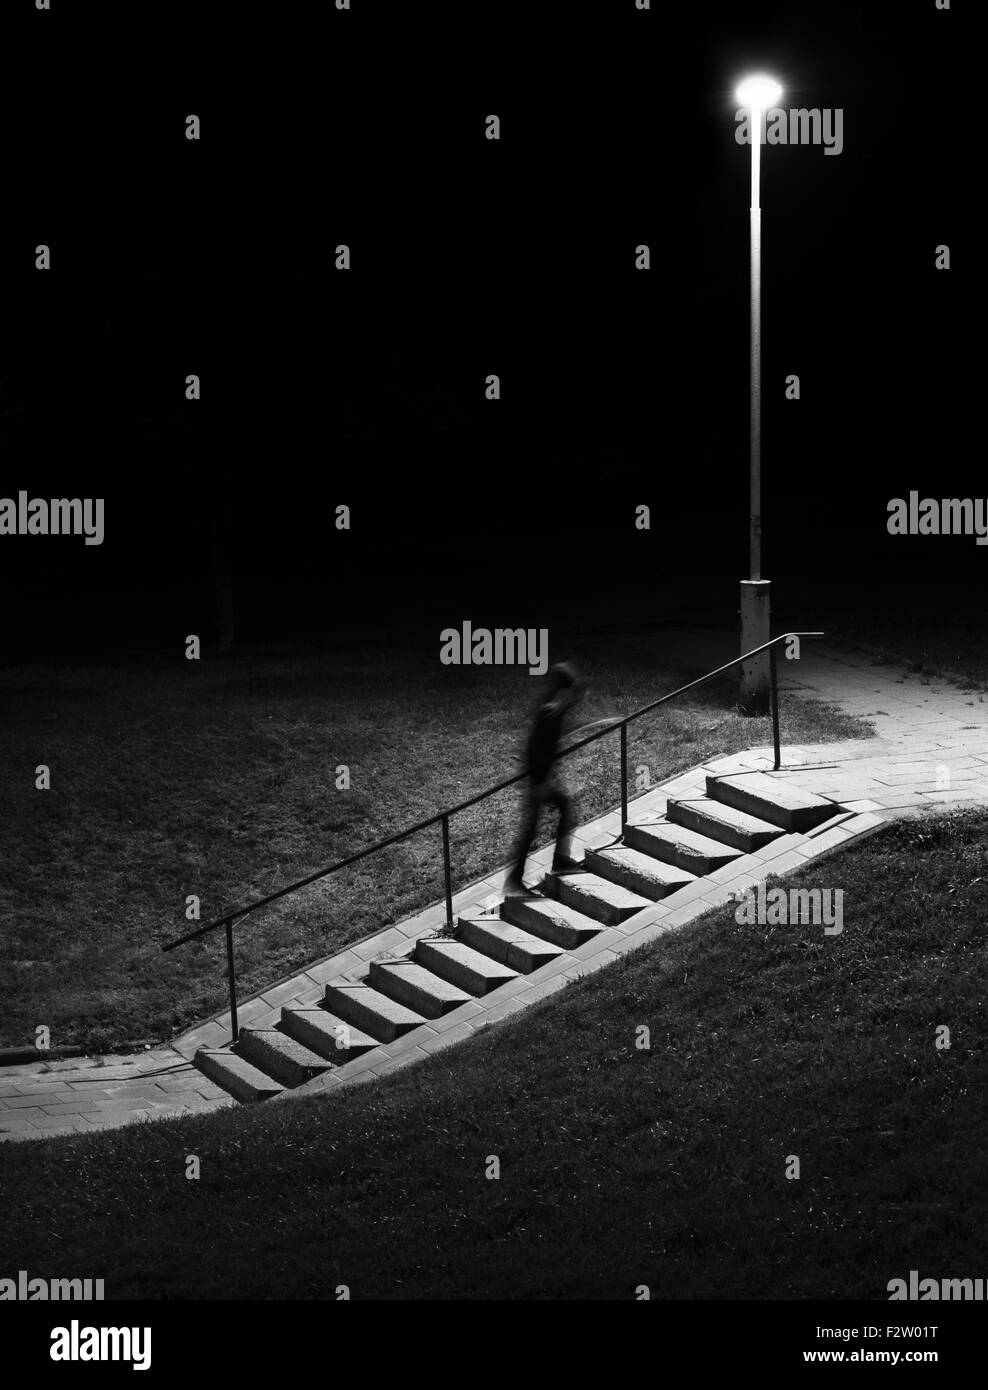 Night scene. Human figure in motion blur walking up stairs. - Stock Image